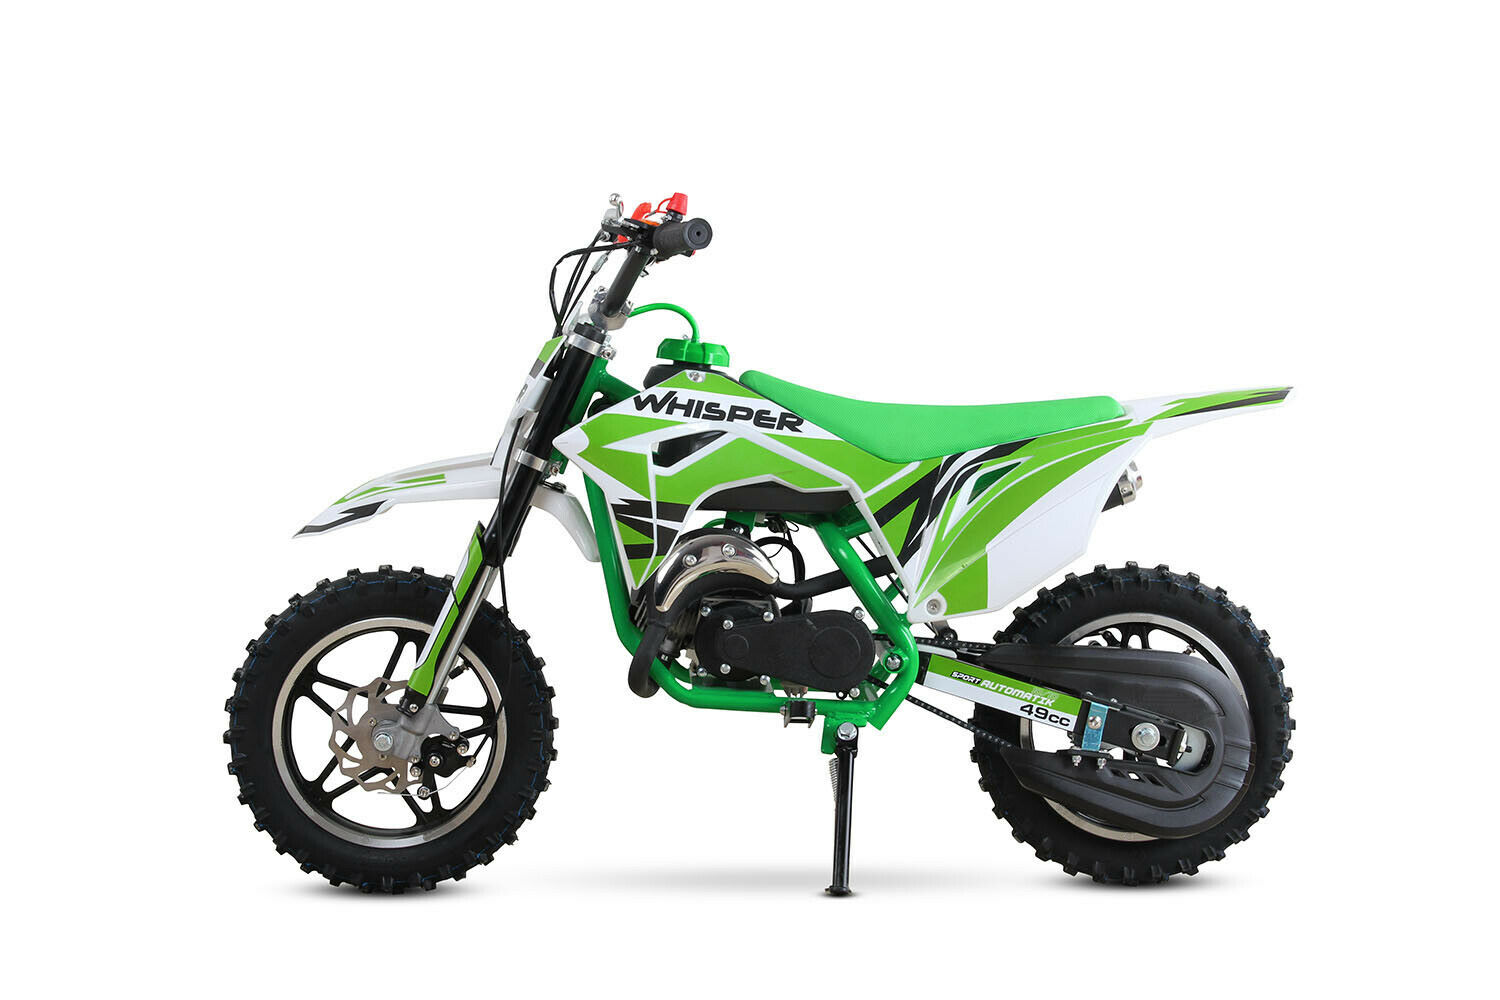 Nitro Motors Dirtbike 49cc Whisper Rennbike Dirtbike Minibike Crossbike Pocket